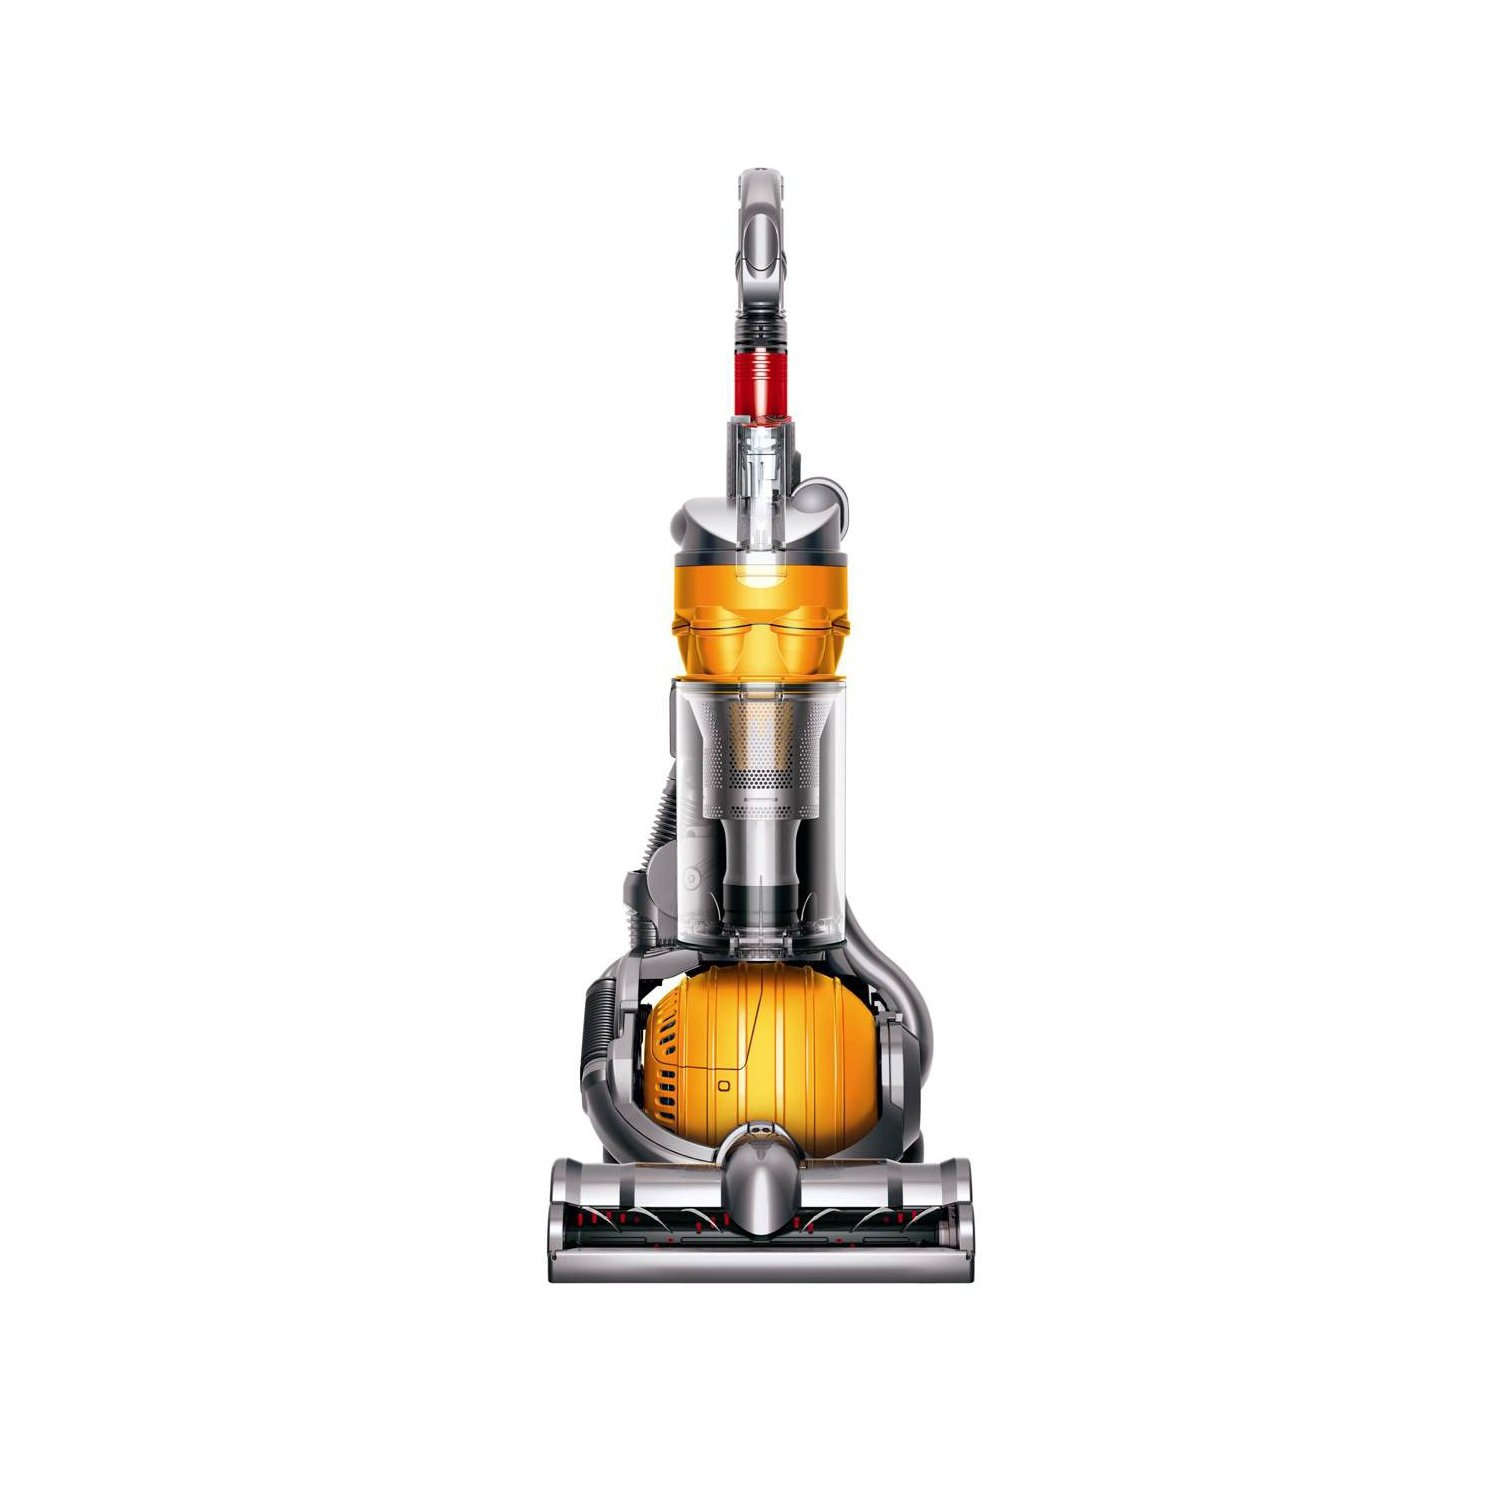 dyson vacuum cleaners dyson dc24 multi floor ultra lightweight dyson ball upright vacuum cleaner. Black Bedroom Furniture Sets. Home Design Ideas